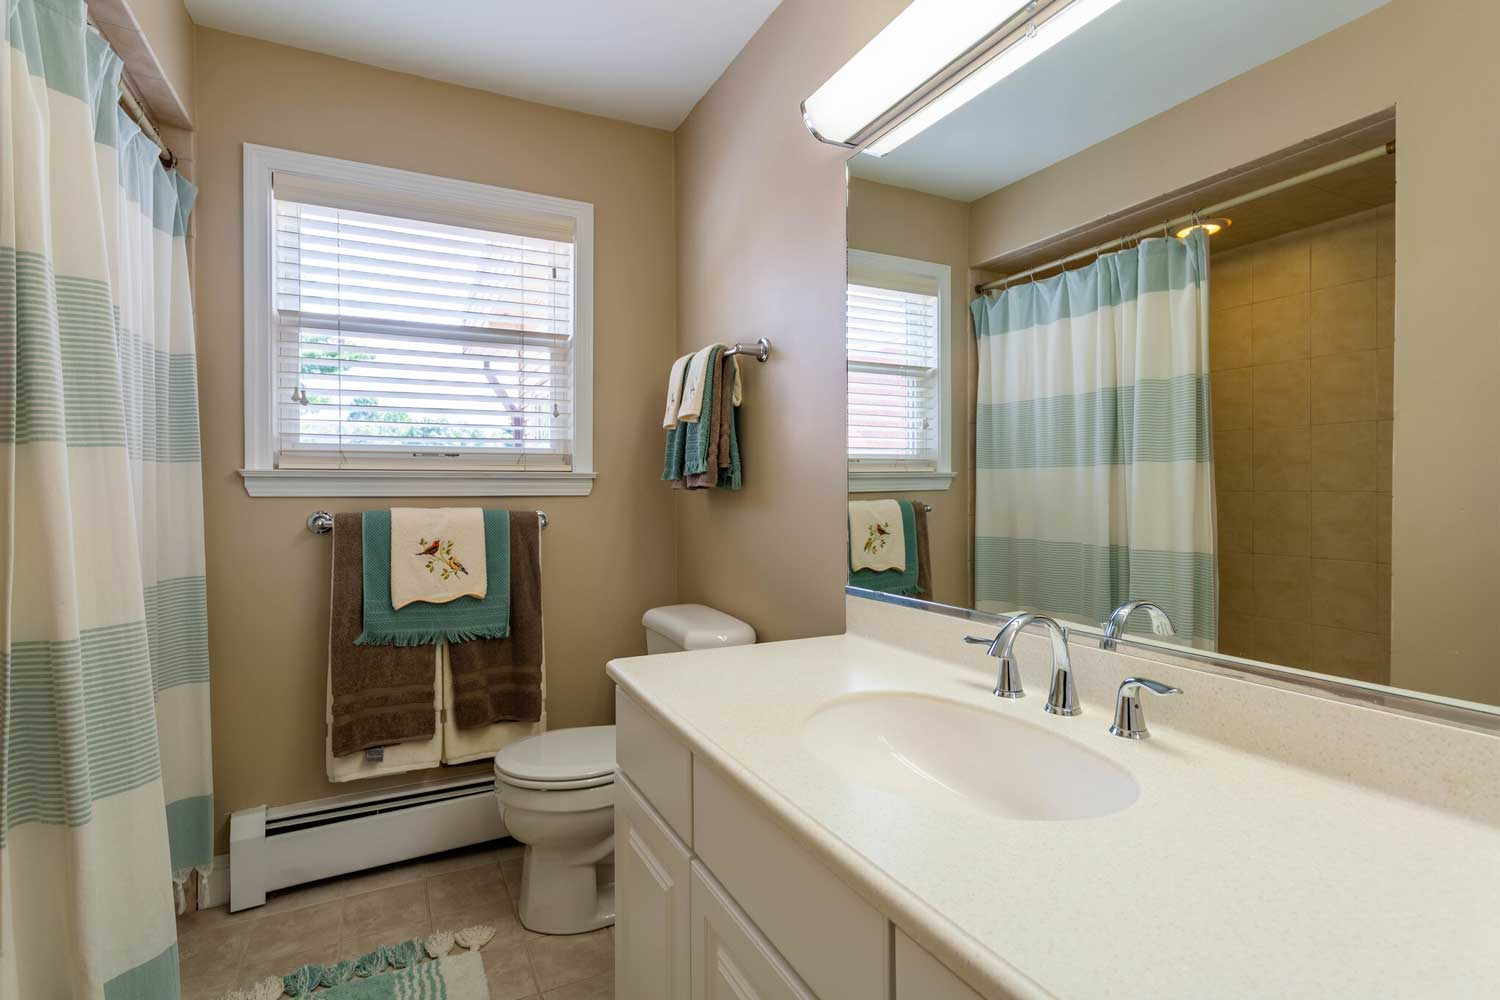 Shower at Mountainview Gardens Apartments in Fishkill, NY